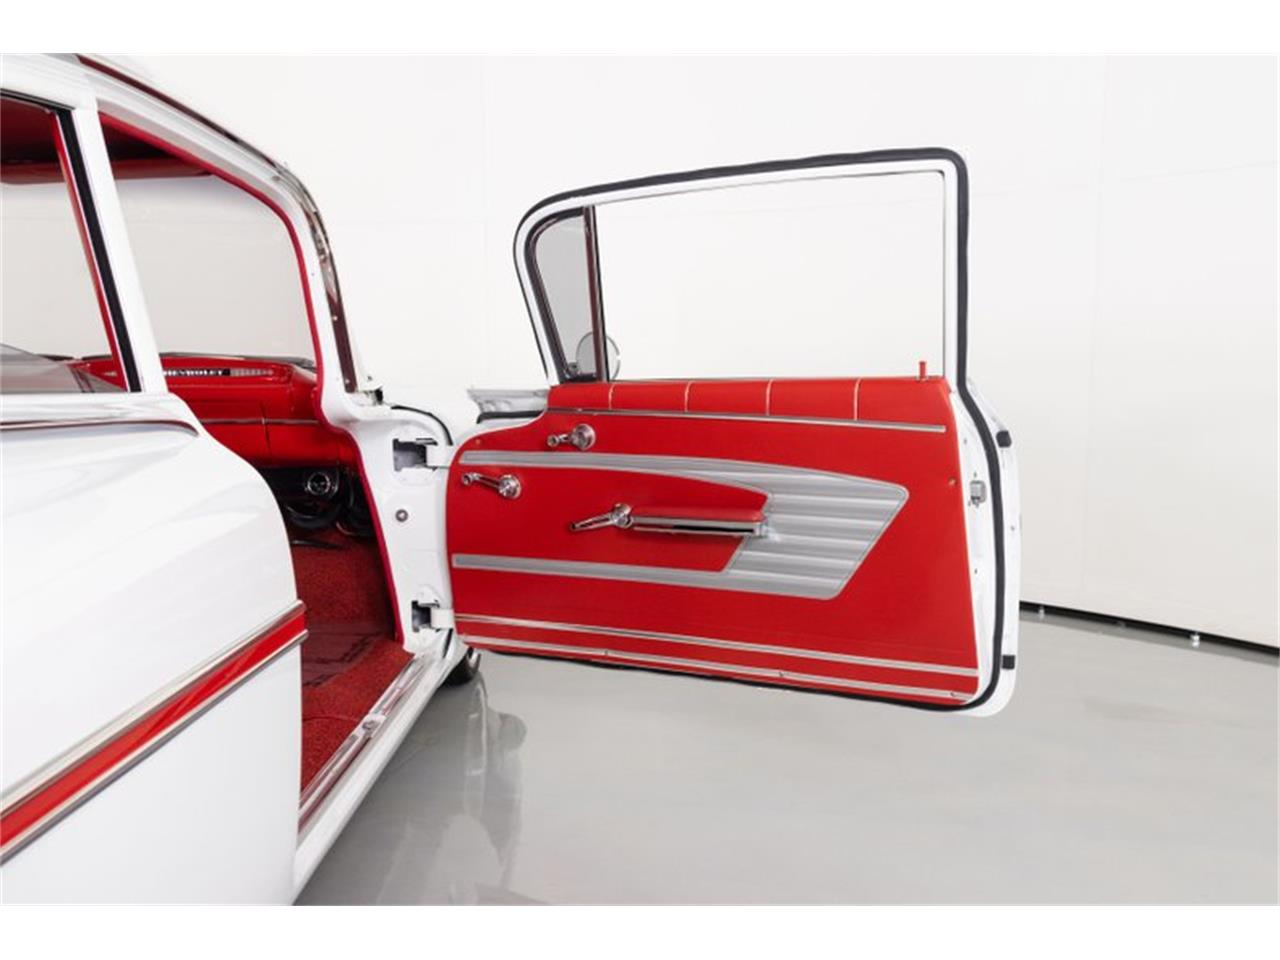 1959 Chevrolet Bel Air (CC-1420803) for sale in St. Charles, Missouri